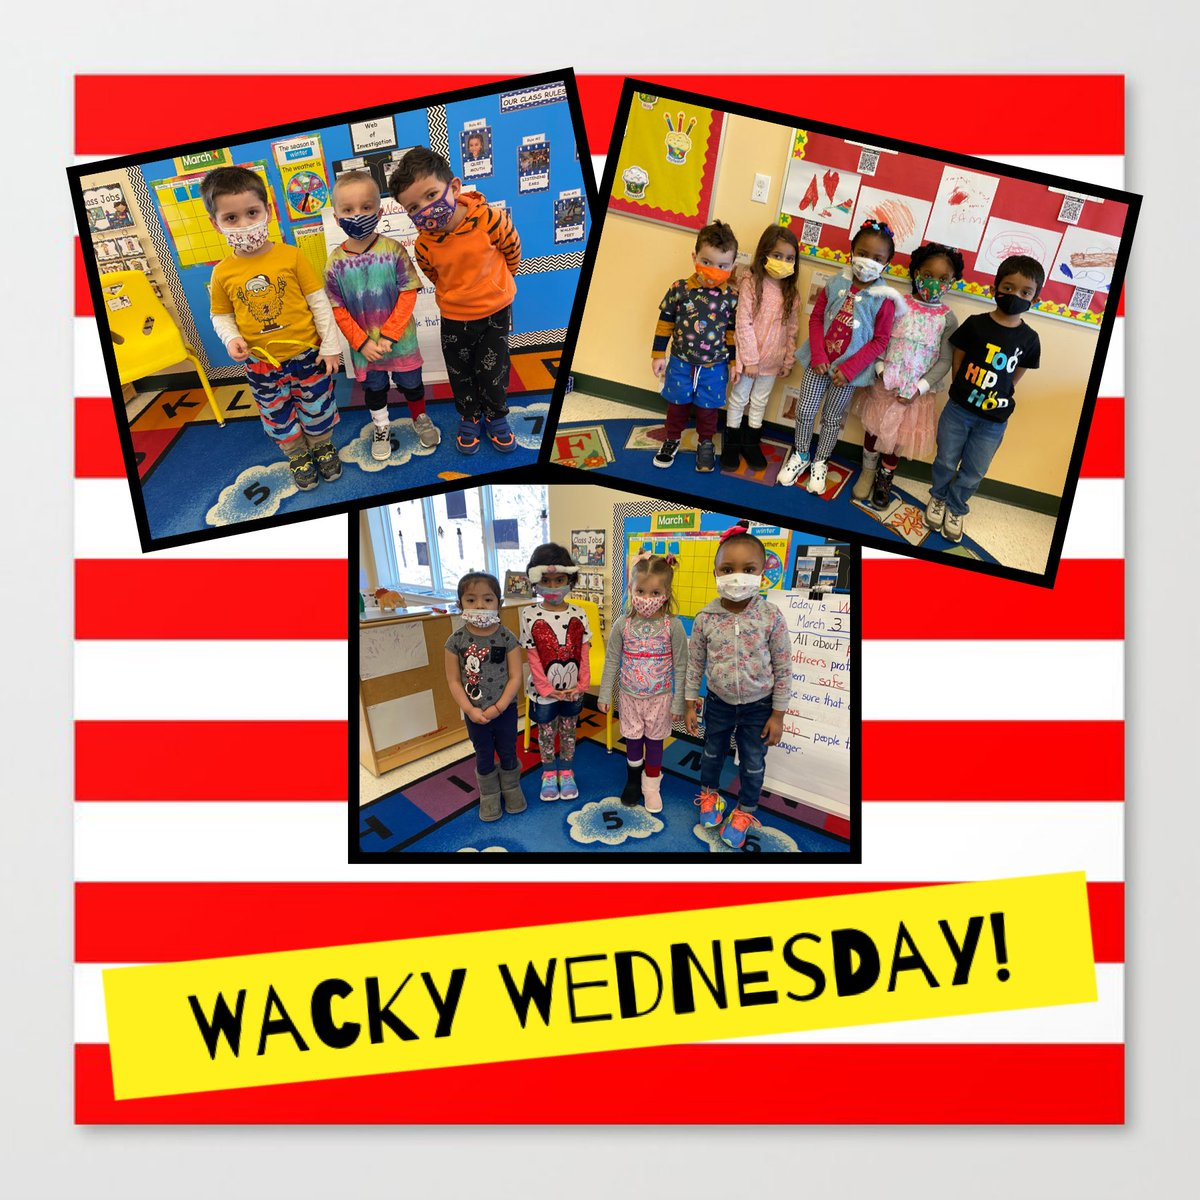 Wacky Wednesday, Pre-K style! 🤪🎉@DrSeuss #ReadAcrossAmerica #literacy https://t.co/cTtxzmJhX7